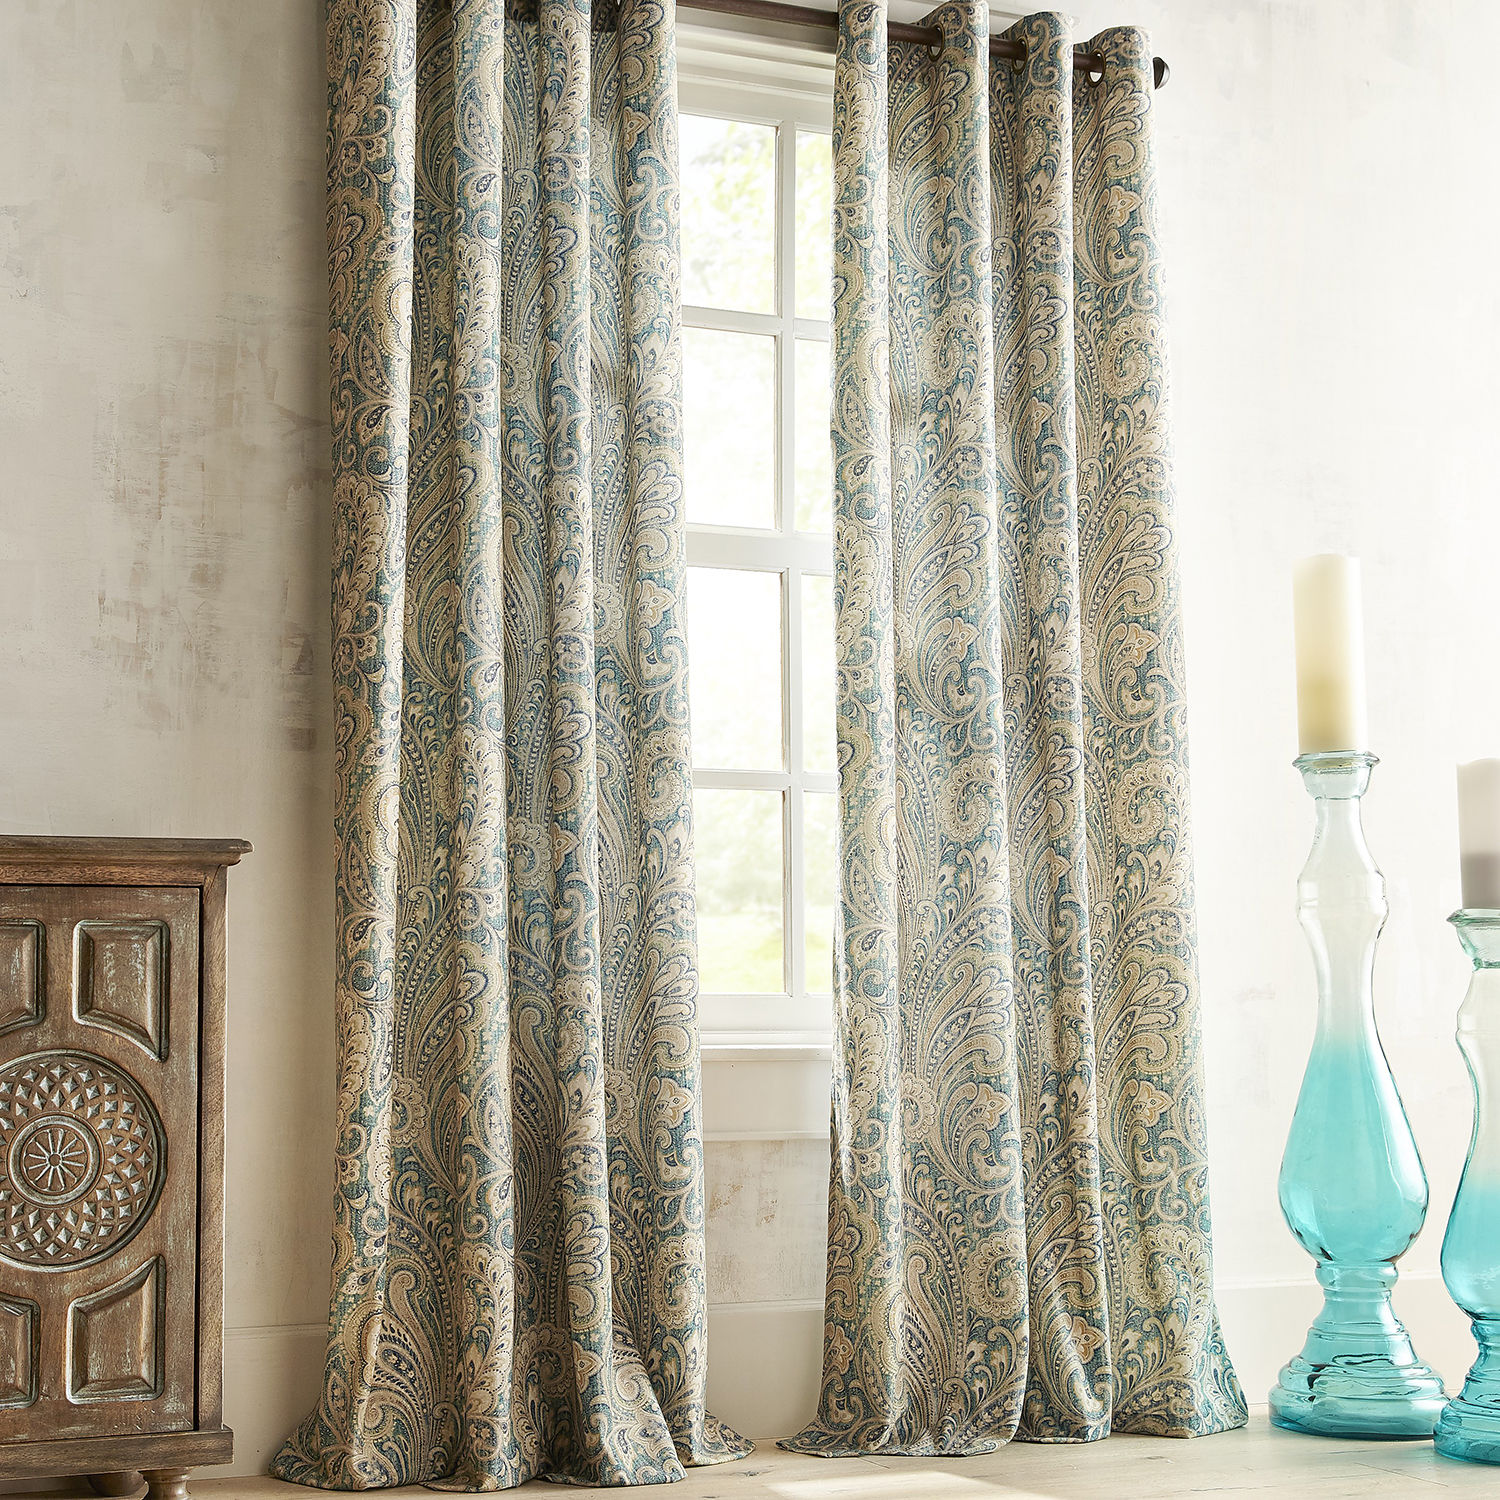 Curtains for Sliding Glass Doors | Window Drapes | Walmart Drapes